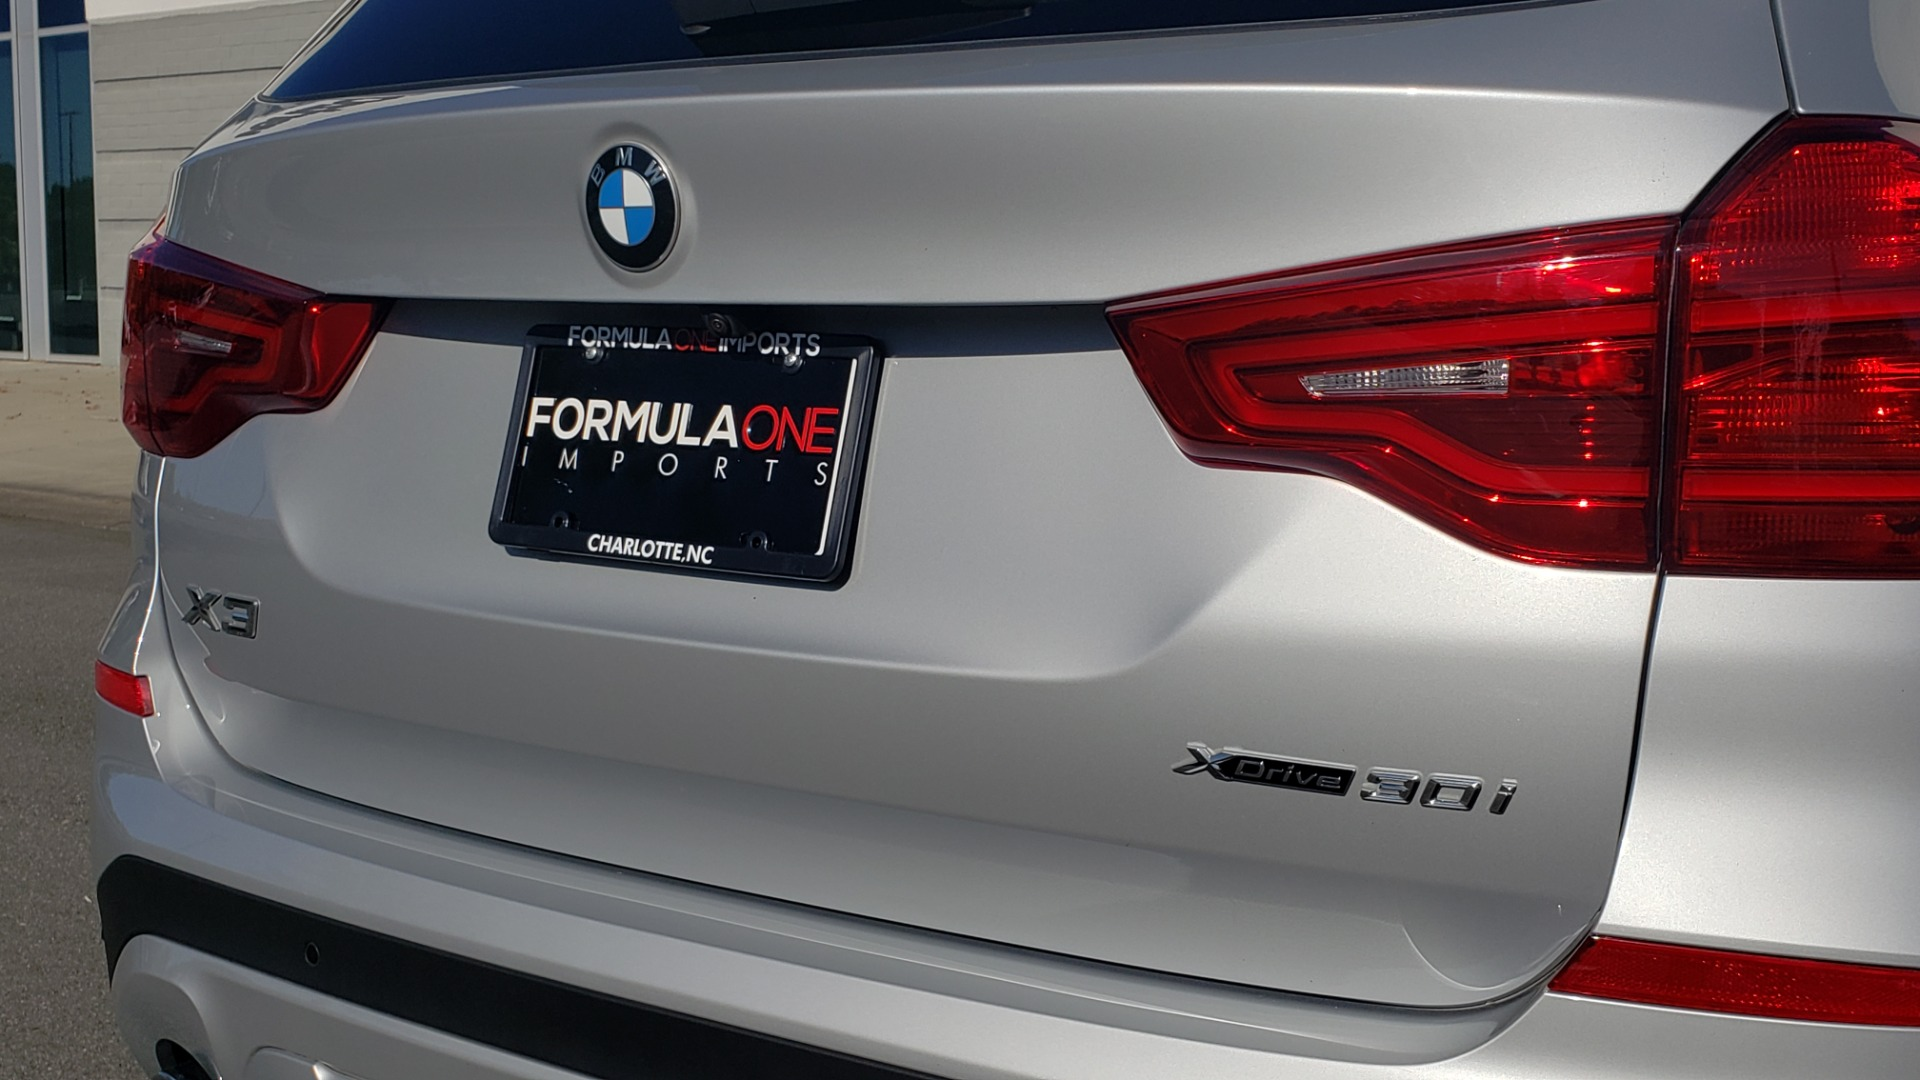 Used 2019 BMW X3 XDRIVE30I / DRVR ASST / PANO-ROOF / HTD STS / REARVIEW for sale $41,995 at Formula Imports in Charlotte NC 28227 34